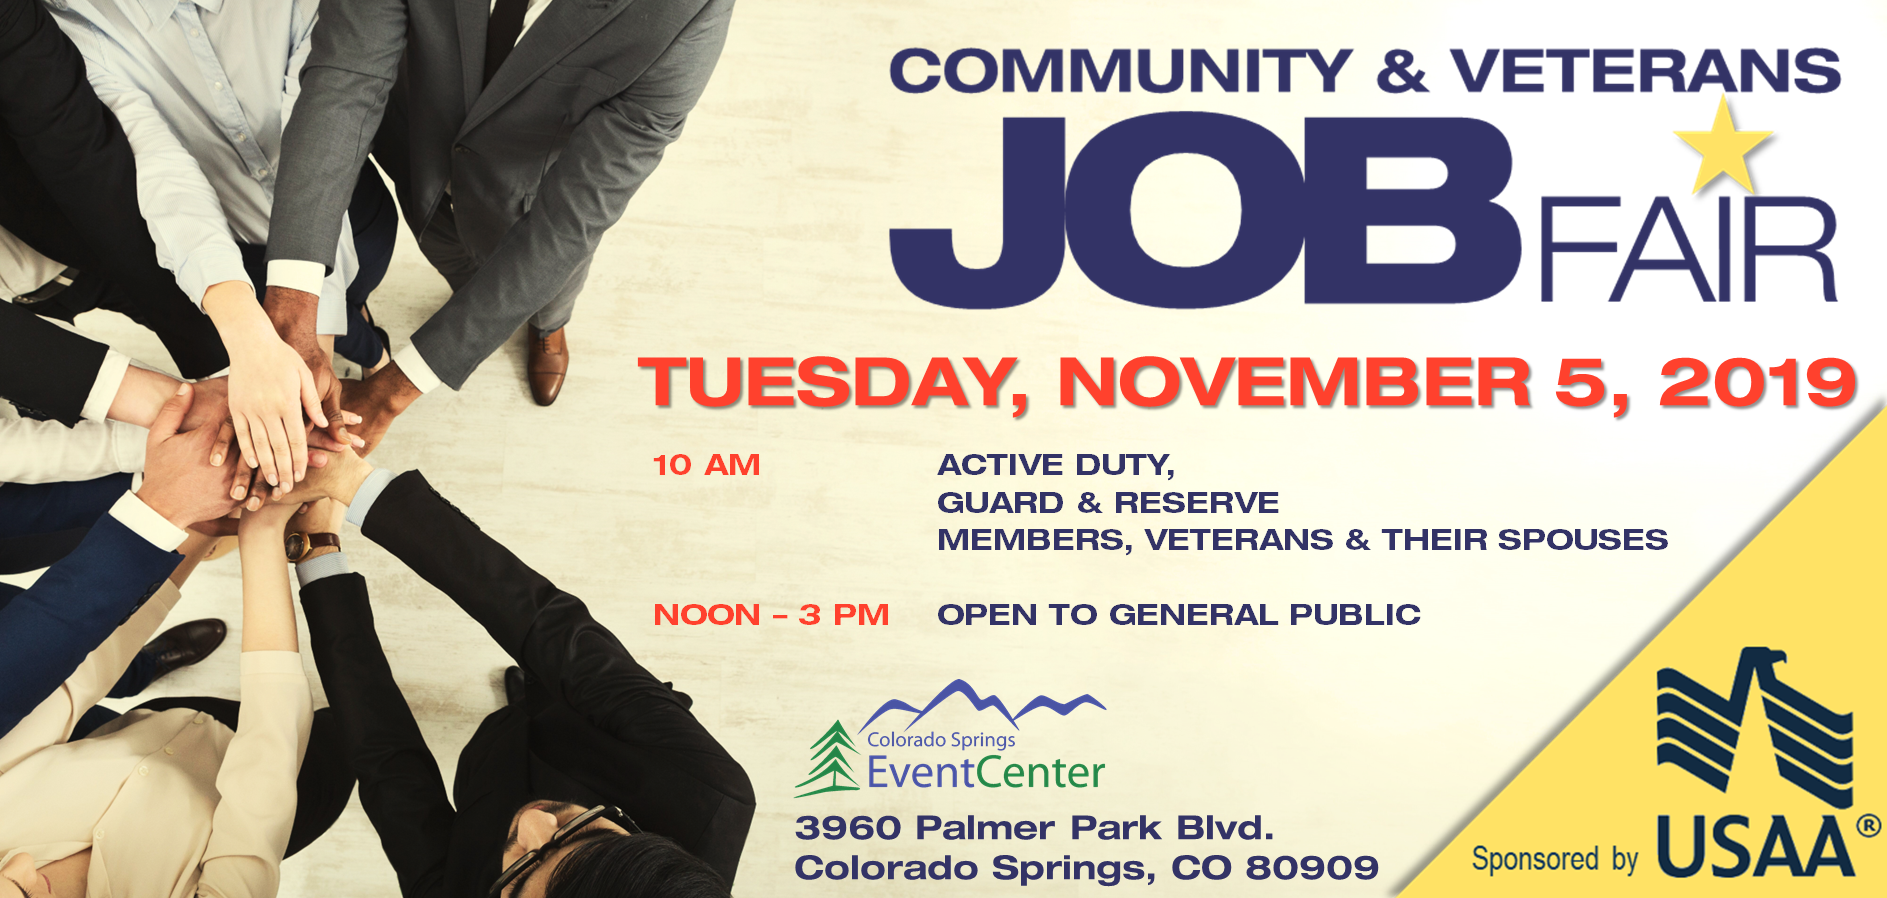 Community & Veterans Job Fair